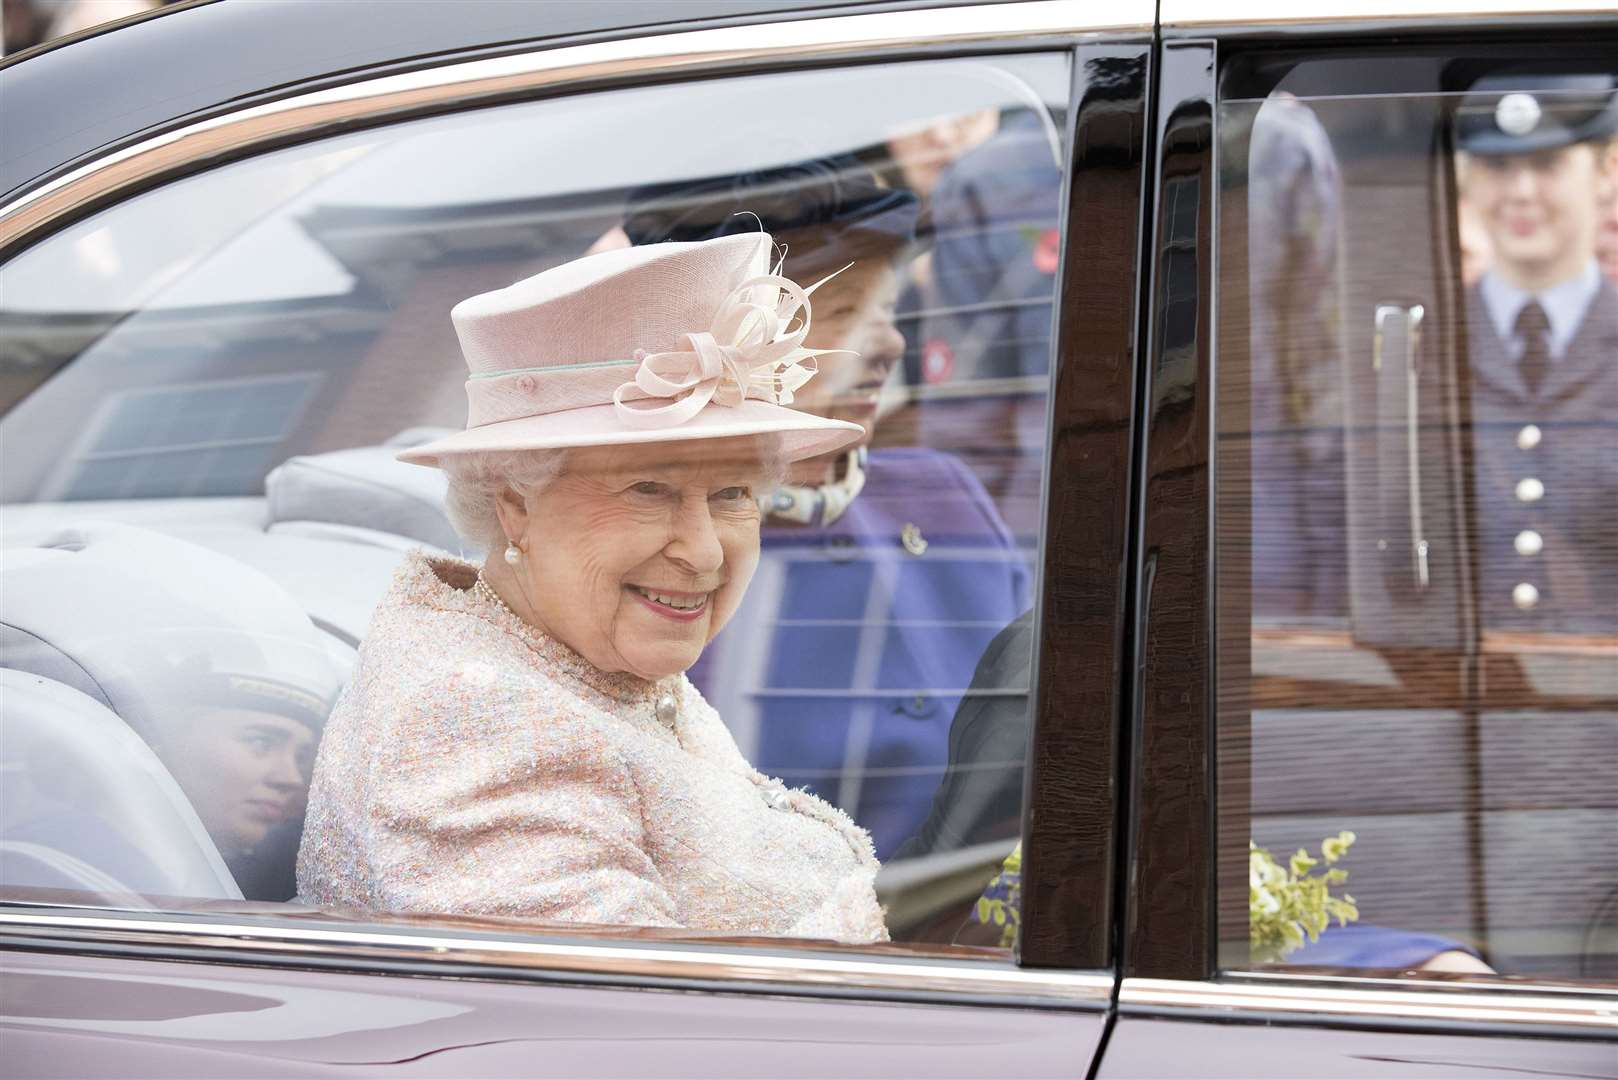 The Queen opens Cambridge's new Papworth Hospital